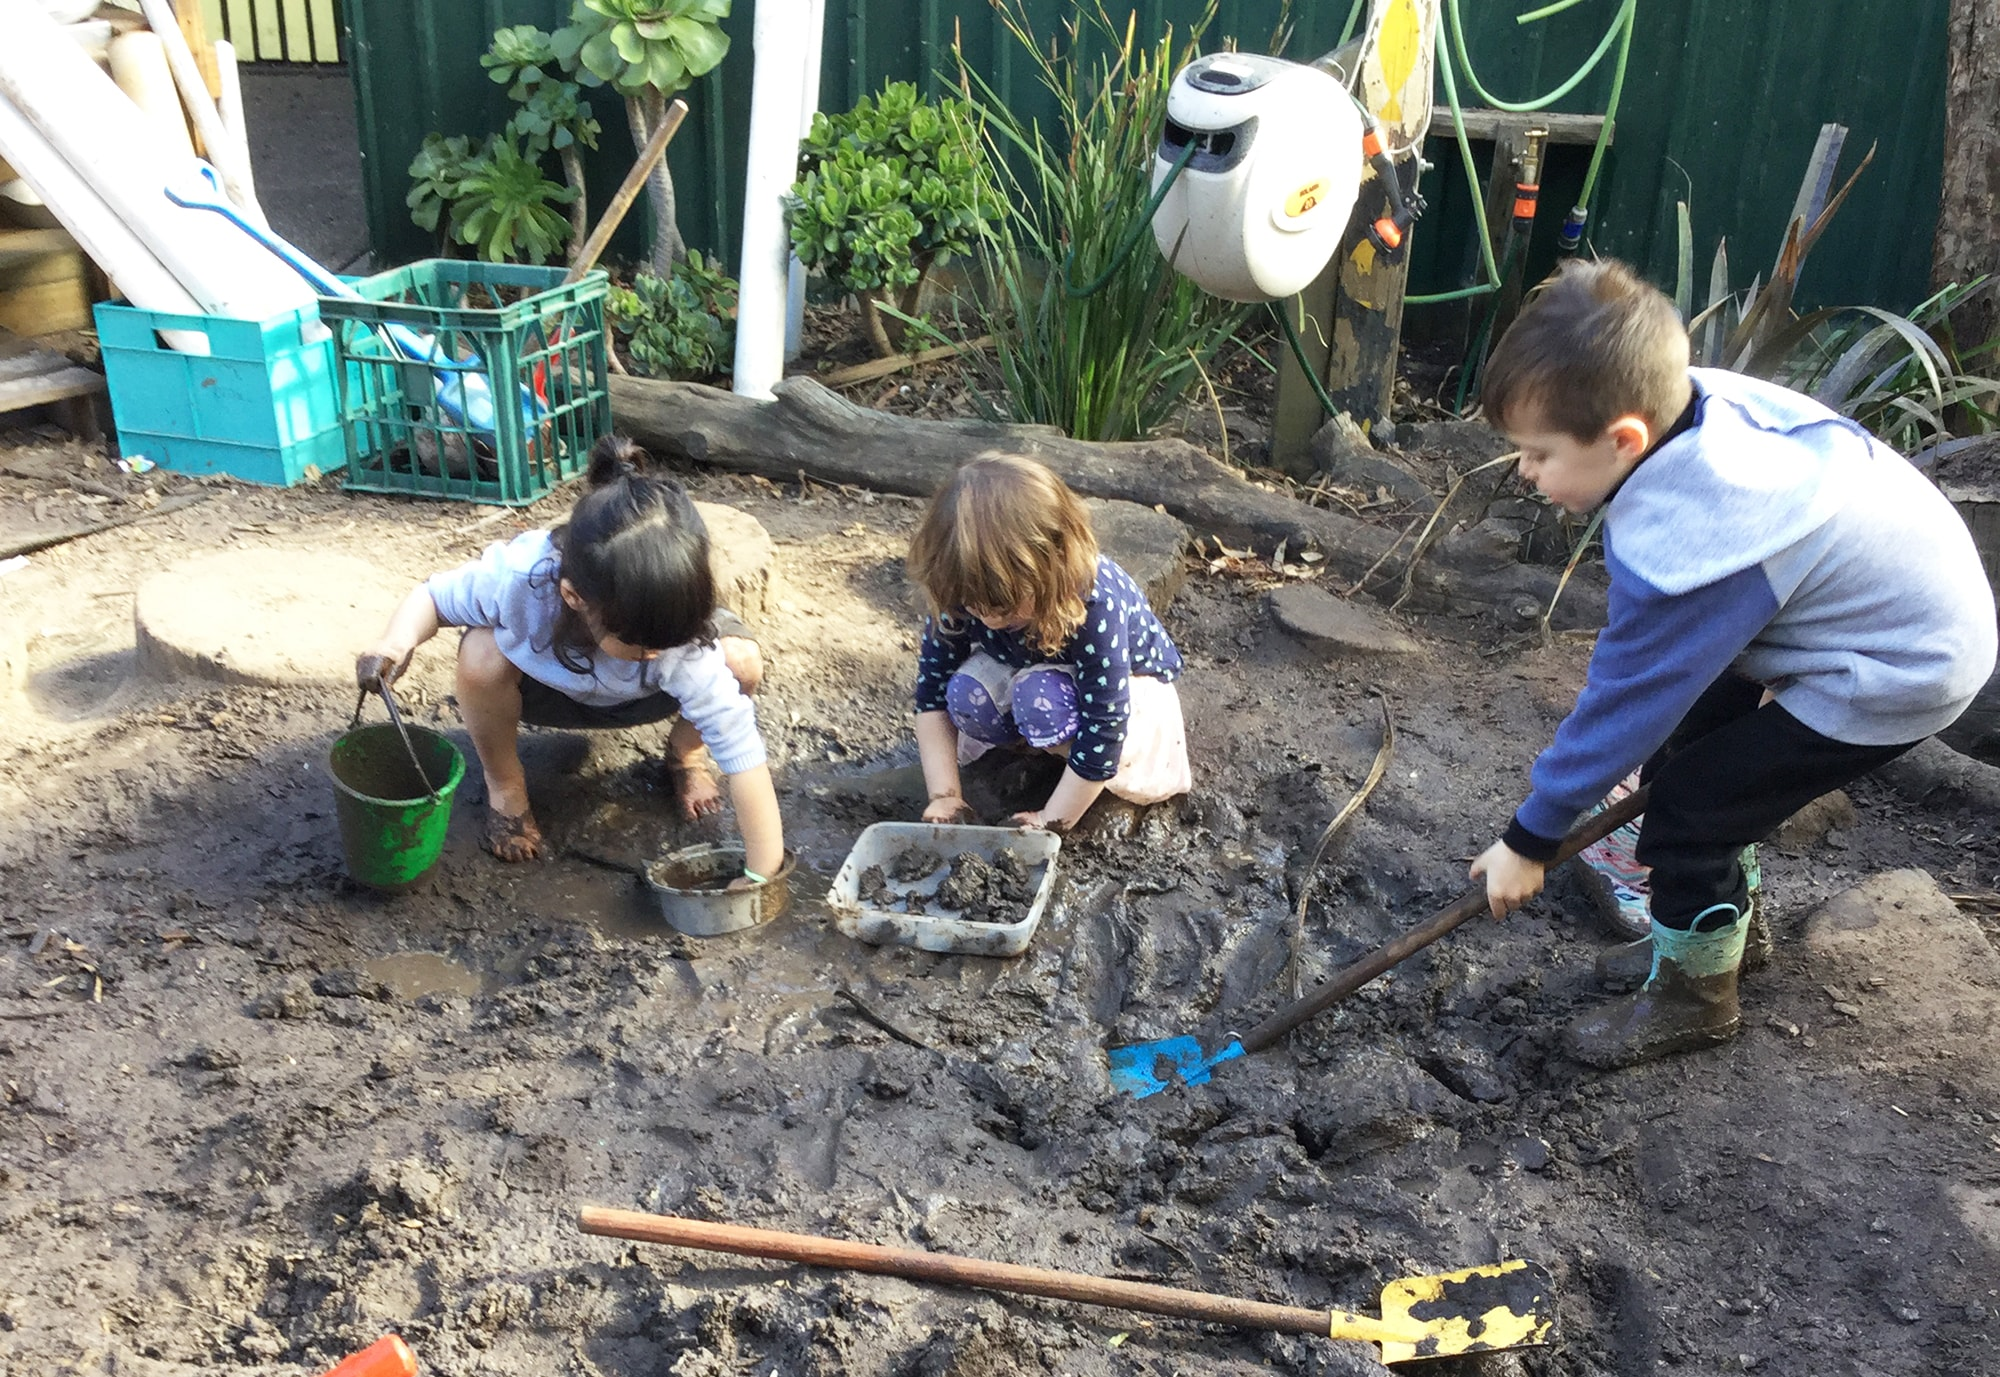 We provide intentional teaching & play based experiences